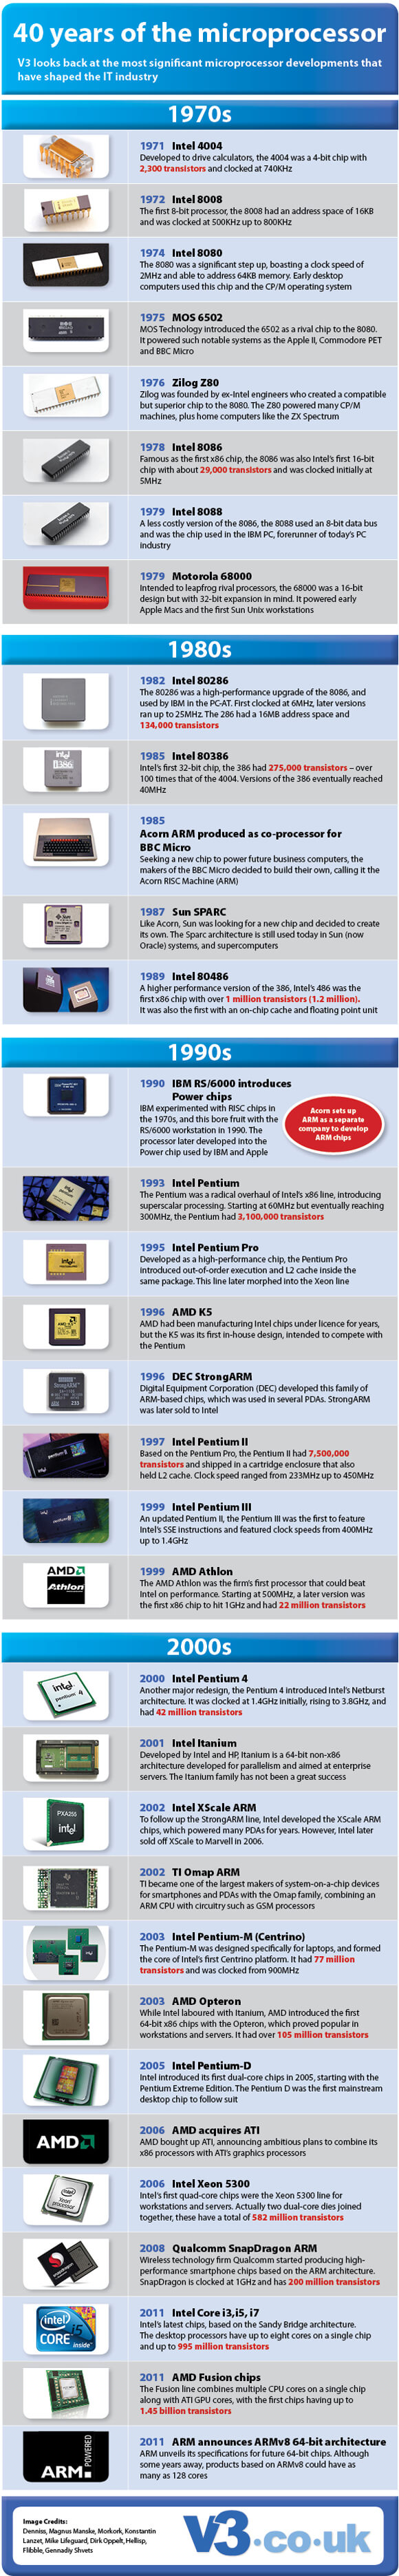 microprocessor timeline infographic